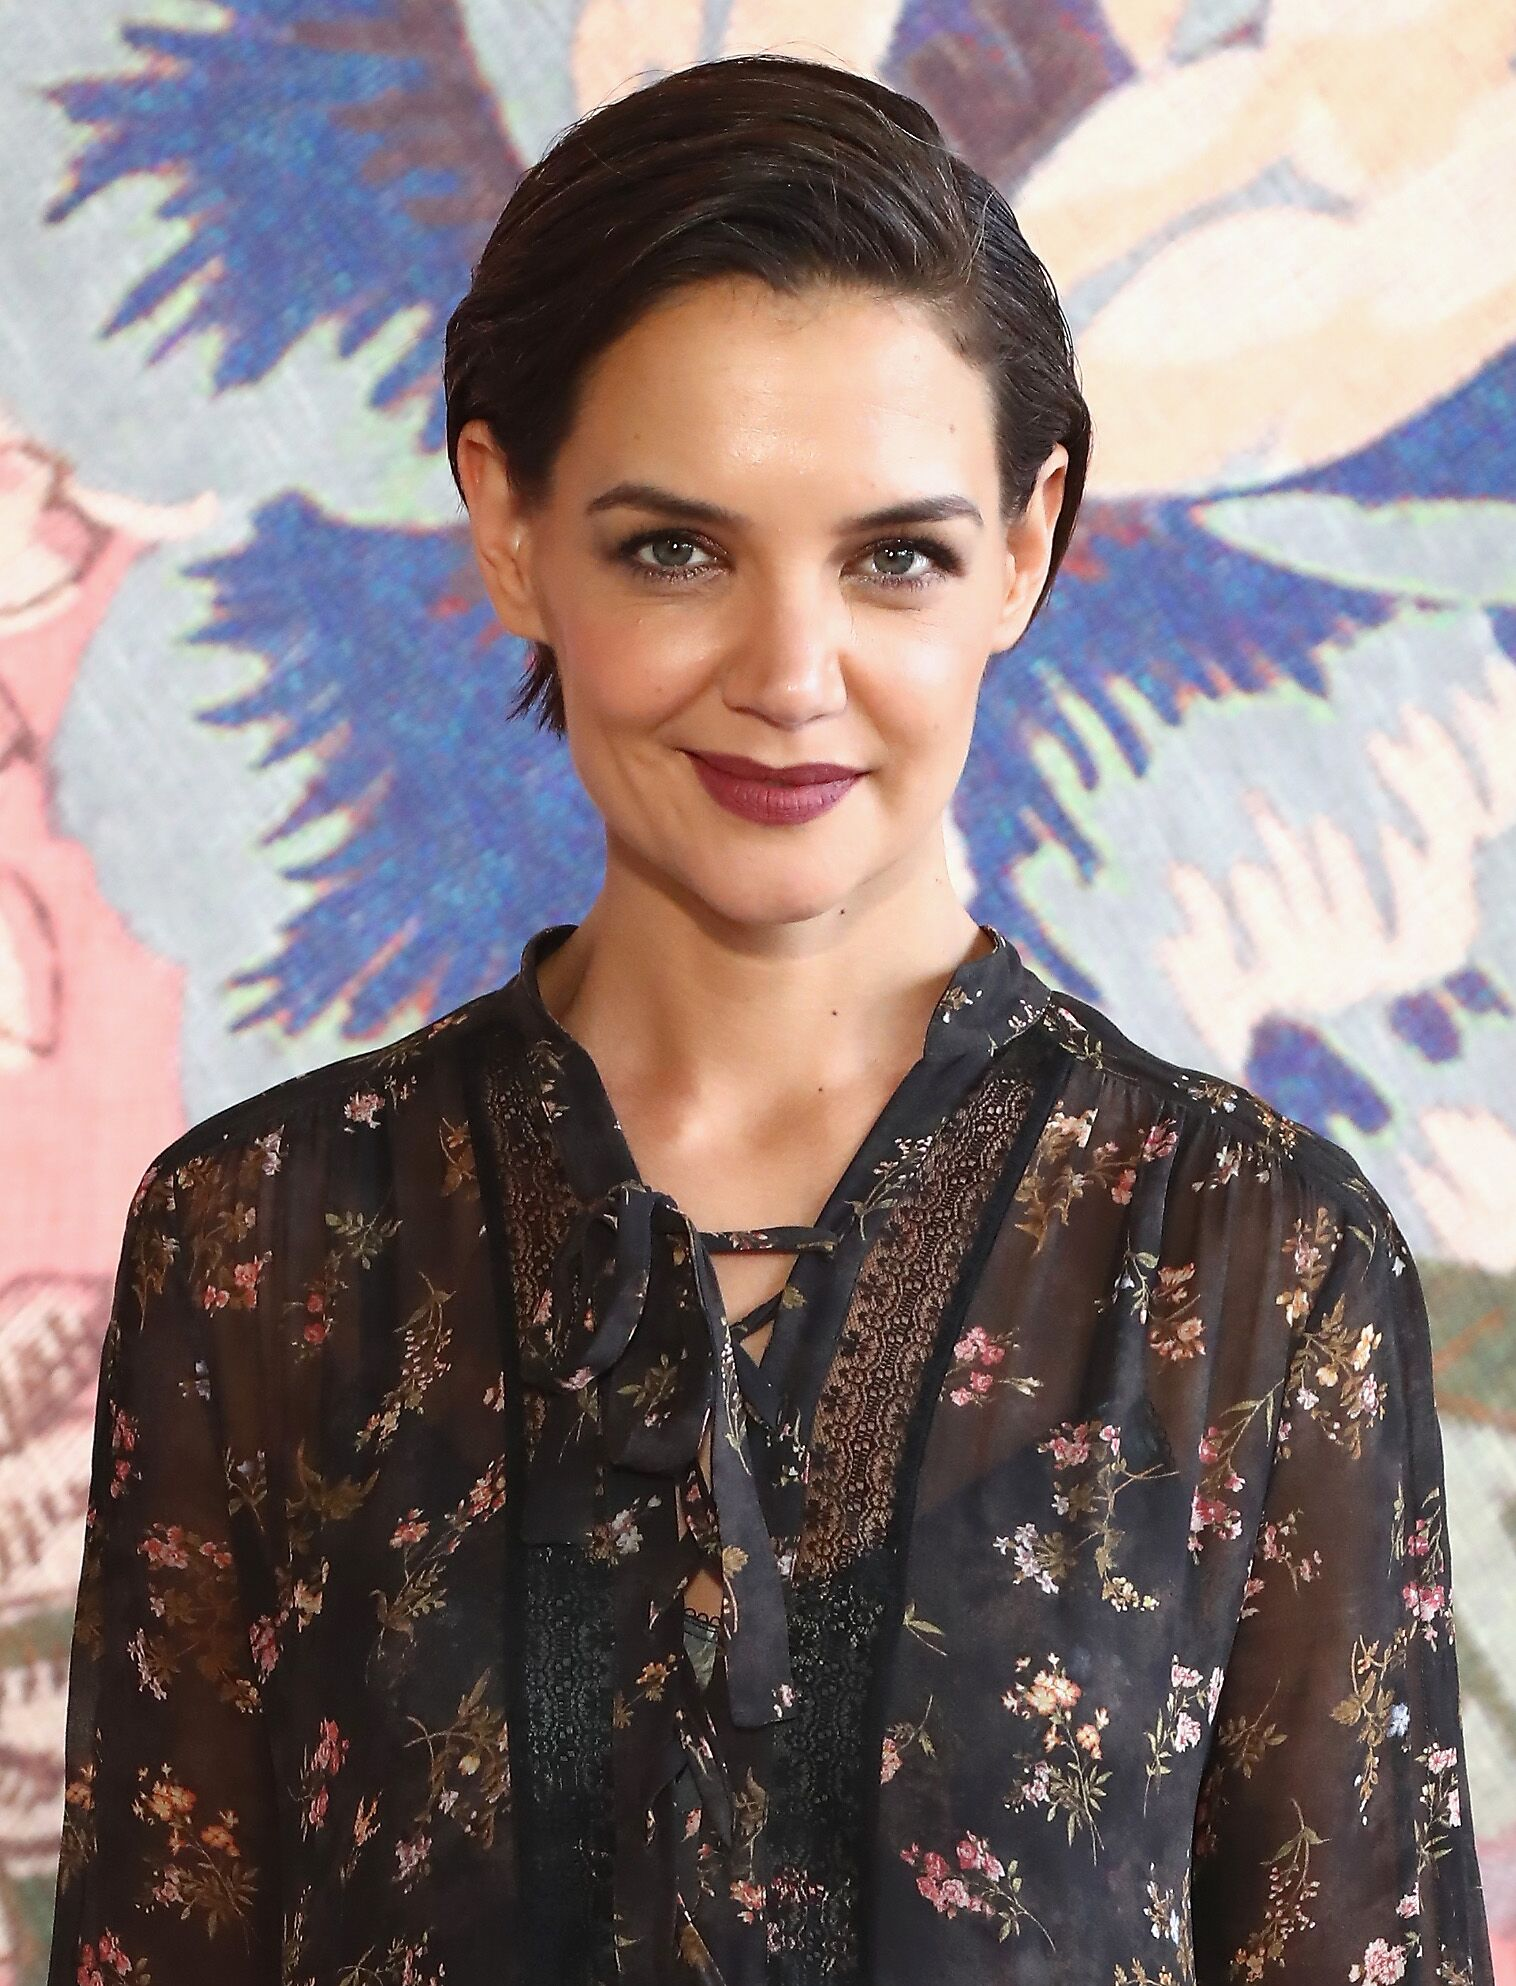 Actor Katie Holmes attends the Zimmermann fashion show during New York Fashion Week: The Shows at Gallery I at Spring Studios on February 12, 2018 in New York City.  | Source: Getty Images